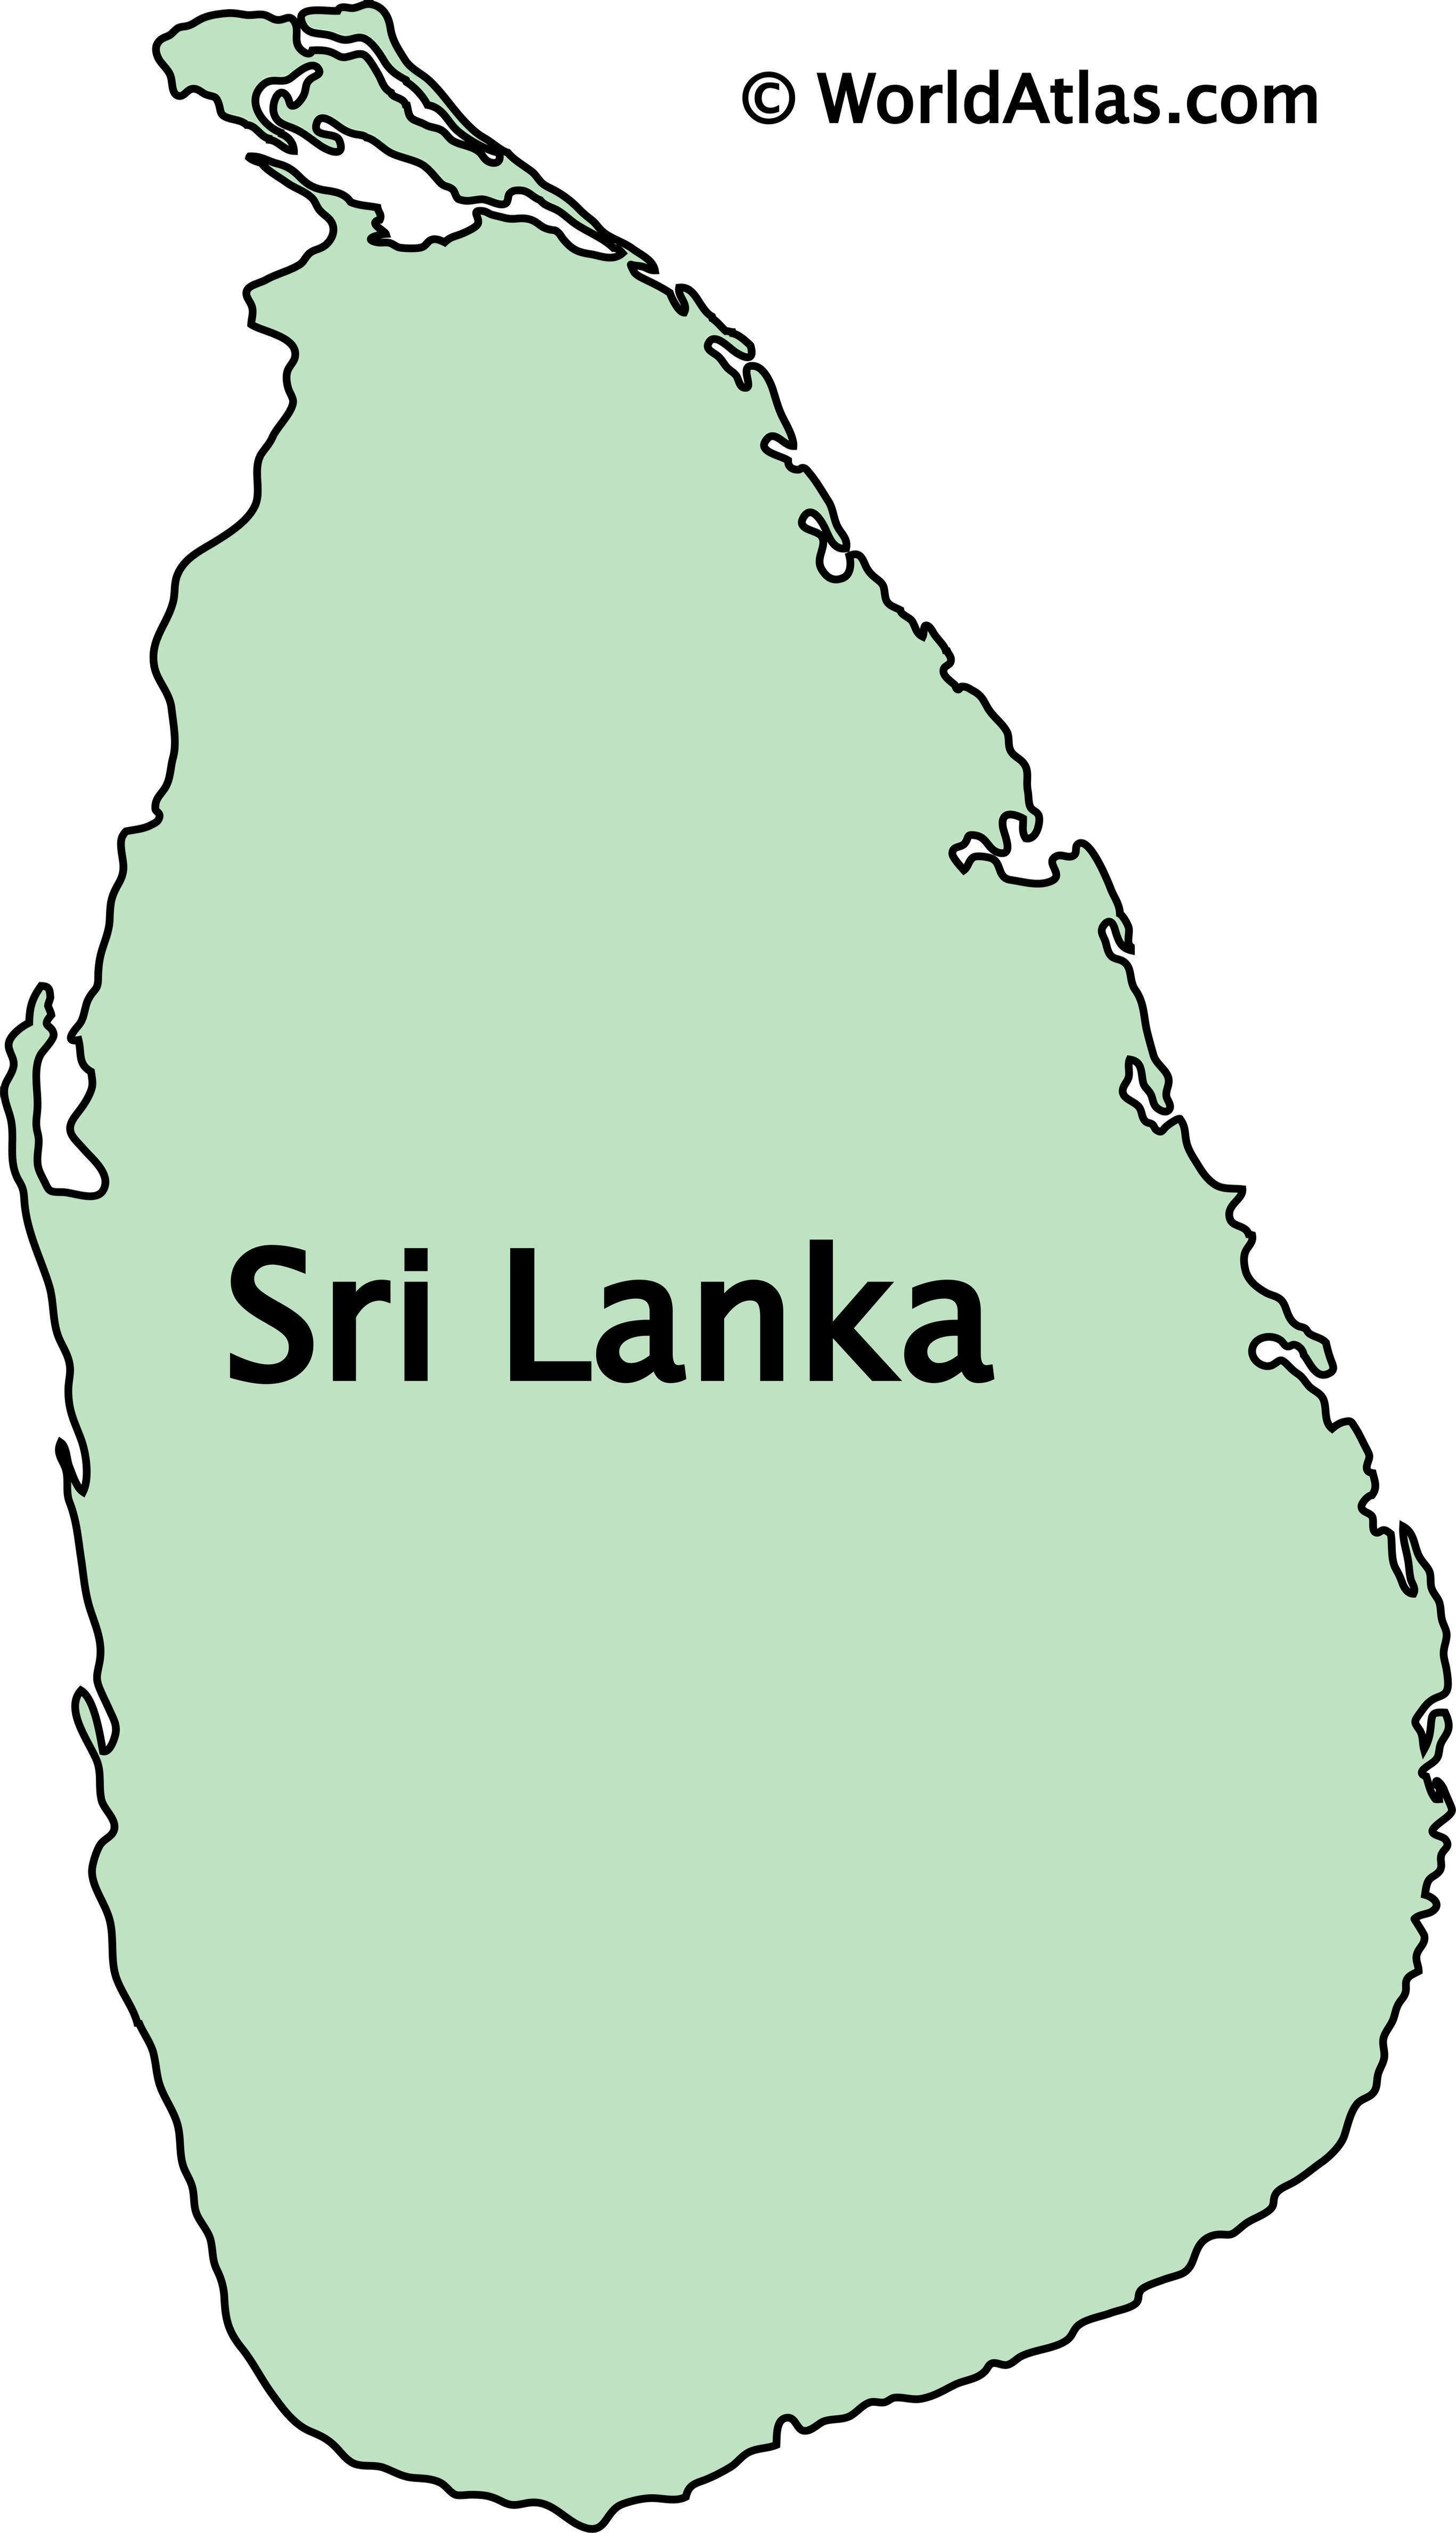 Outline Map of Sri Lanka